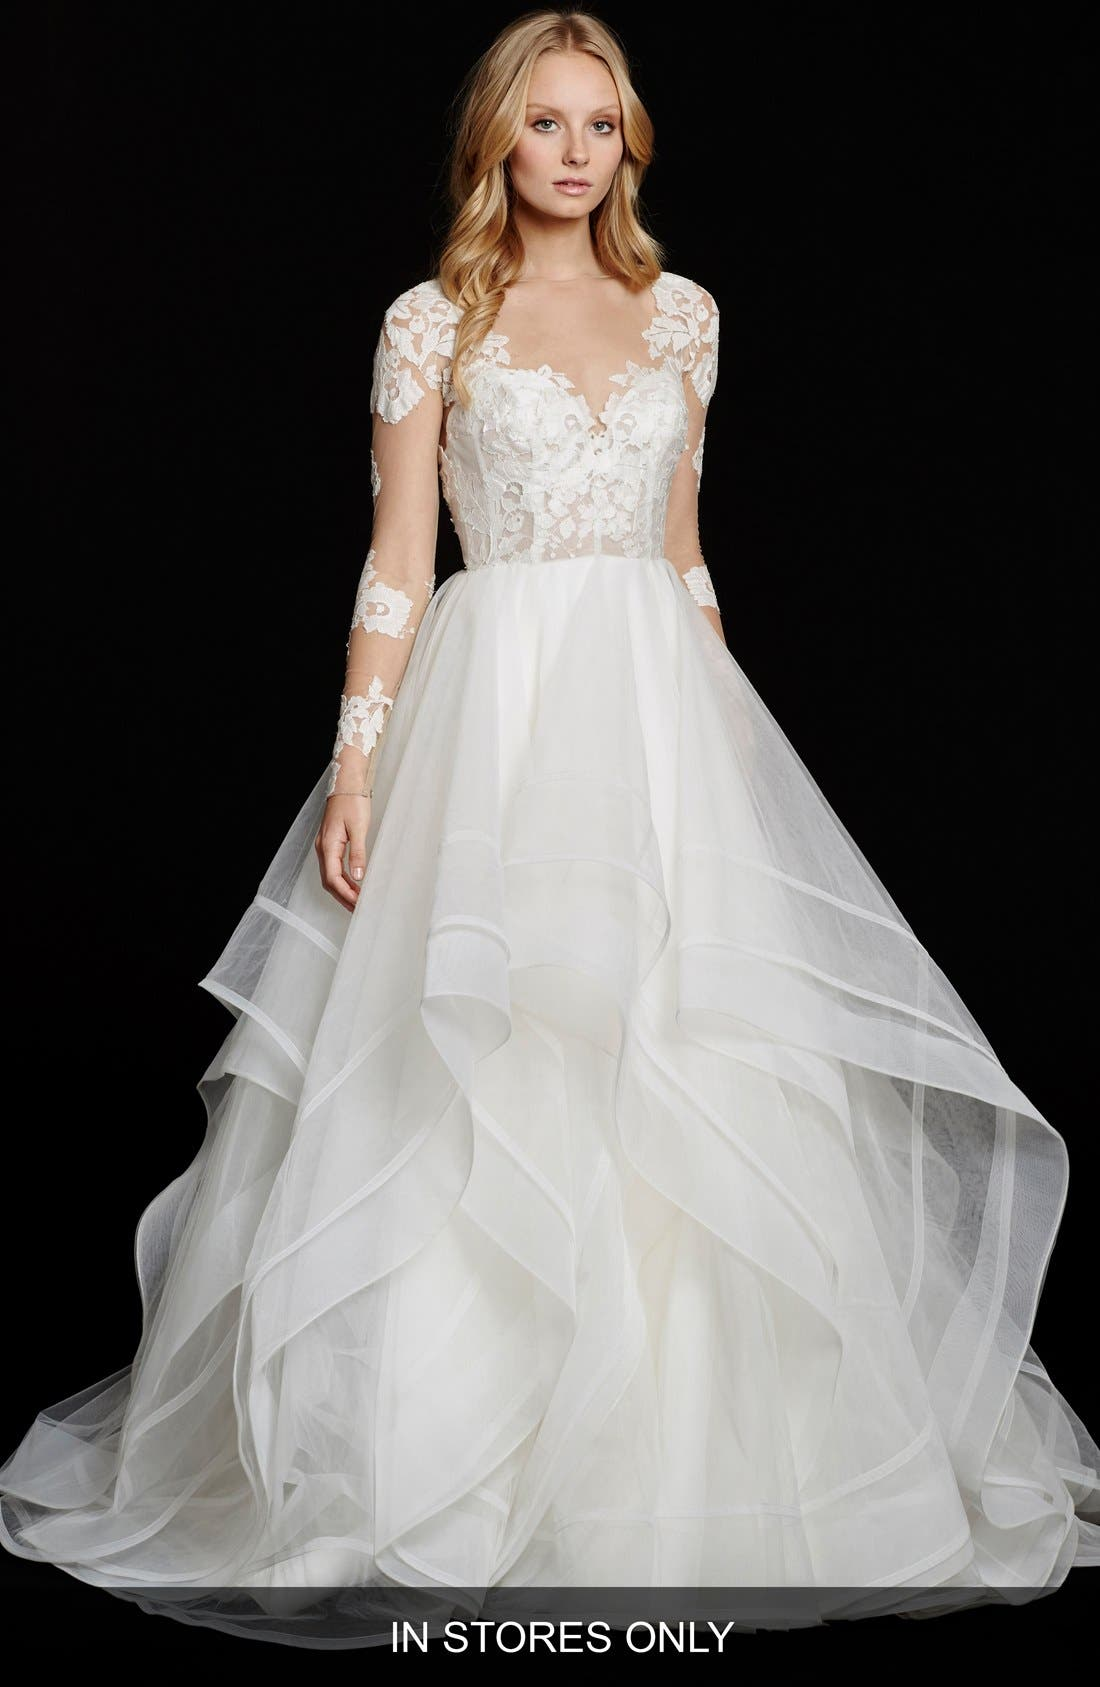 Alternate Image 1 Selected - Hayley Paige 'Elysia' Long Sleeve Lace & Tulle Ballgown (In Stores Only)